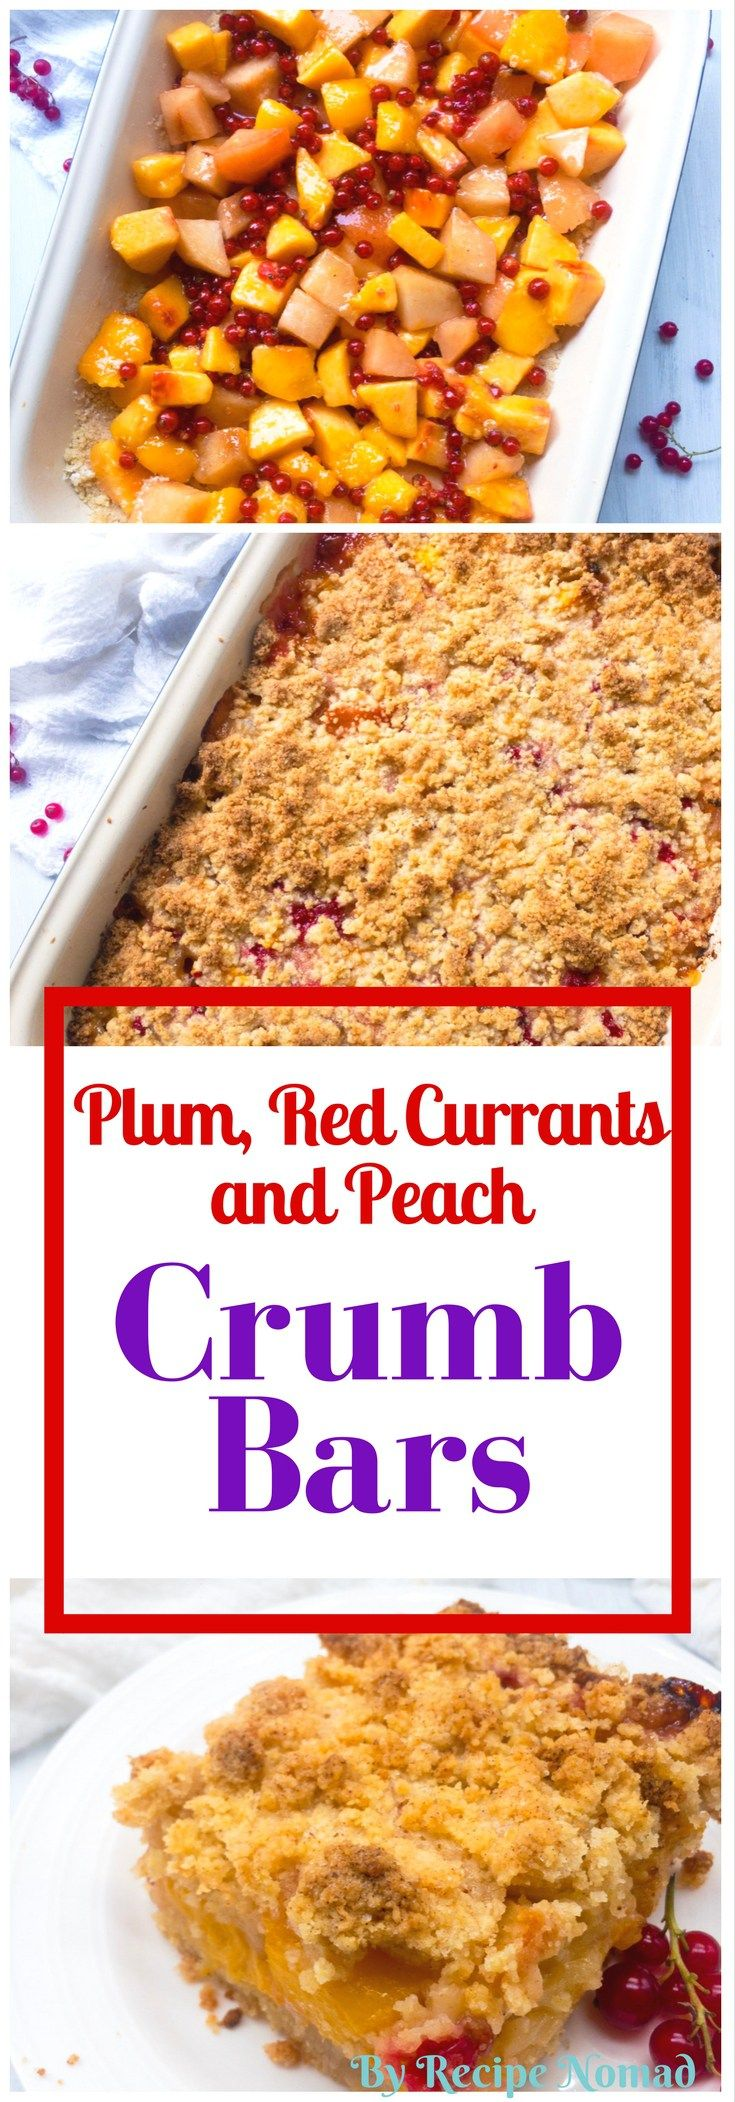 You are going to fall in love with this Plum, Red Currants and Peach Crumb Bars! The crumble is super easy and made in a food processor and the fresh fruit is perfect!